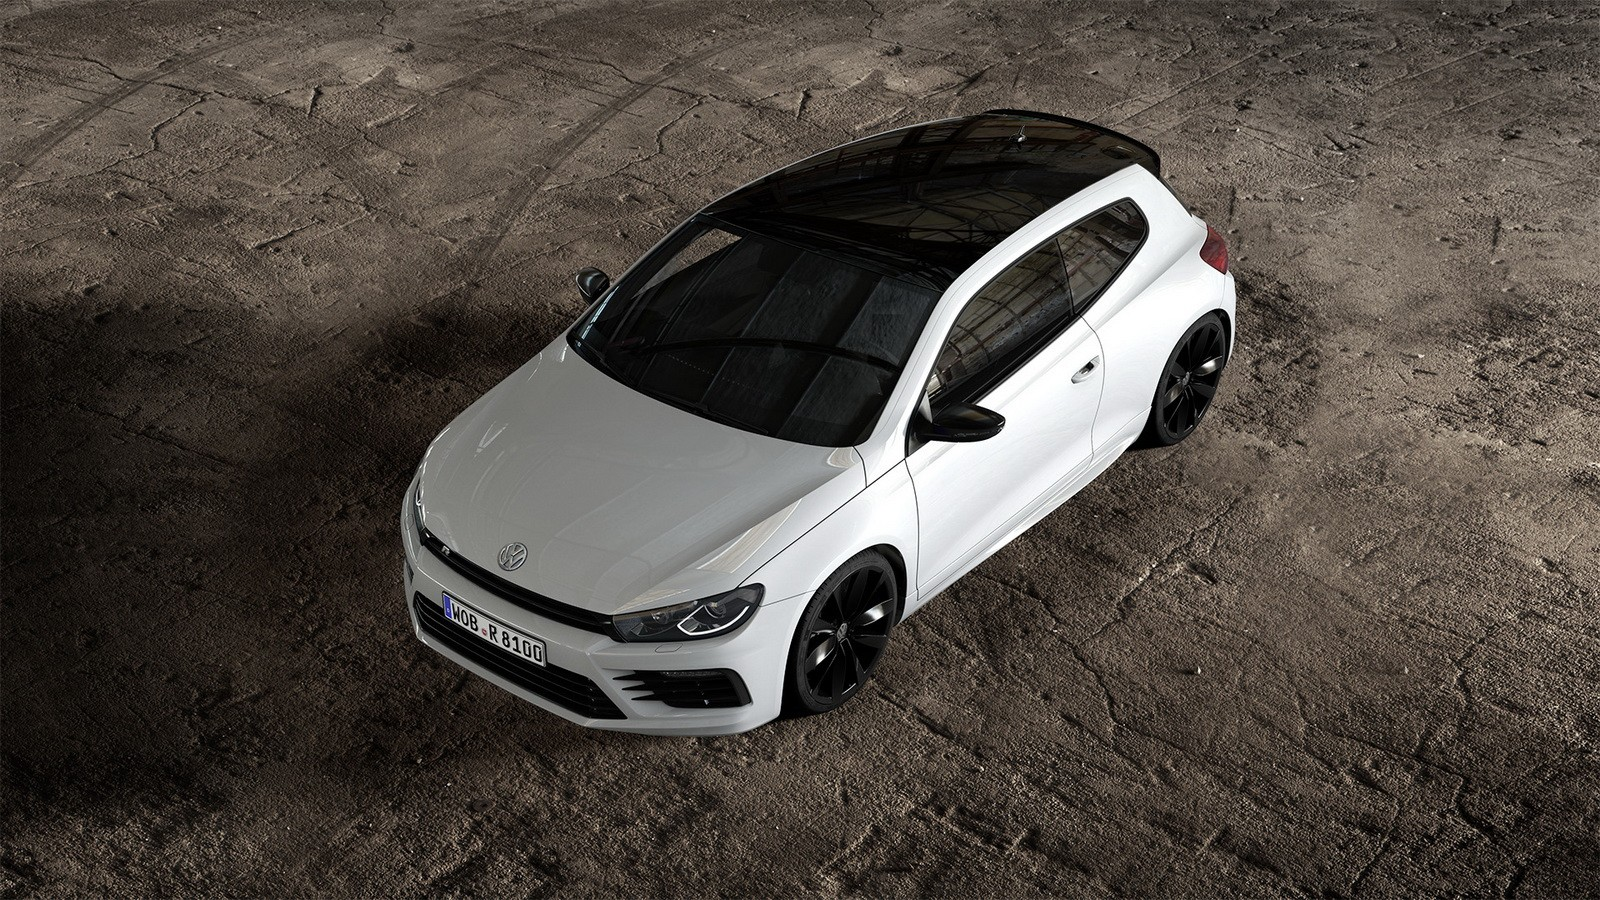 Volkswagen Scirocco Being Axed in Australia, R Wolfsburg Edition Is the Last - autoevolution